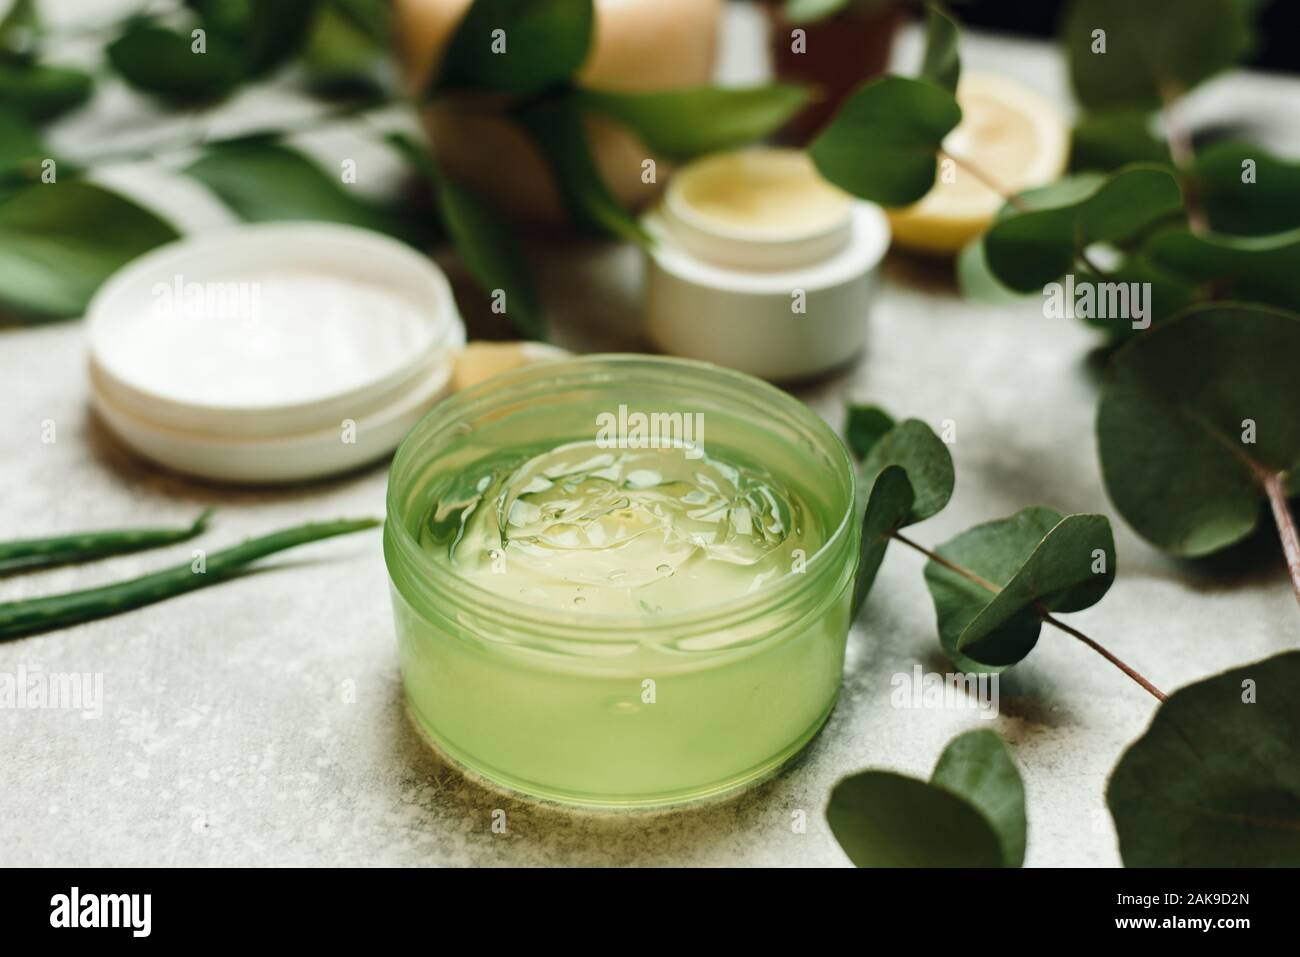 A Can Of Aloe Gel Next To An Aloe Branch And Eucalyptus Leaves The Concept Of Skin Care Love For Your Body Natural Ingredients Background With Nat Stock Photo Alamy